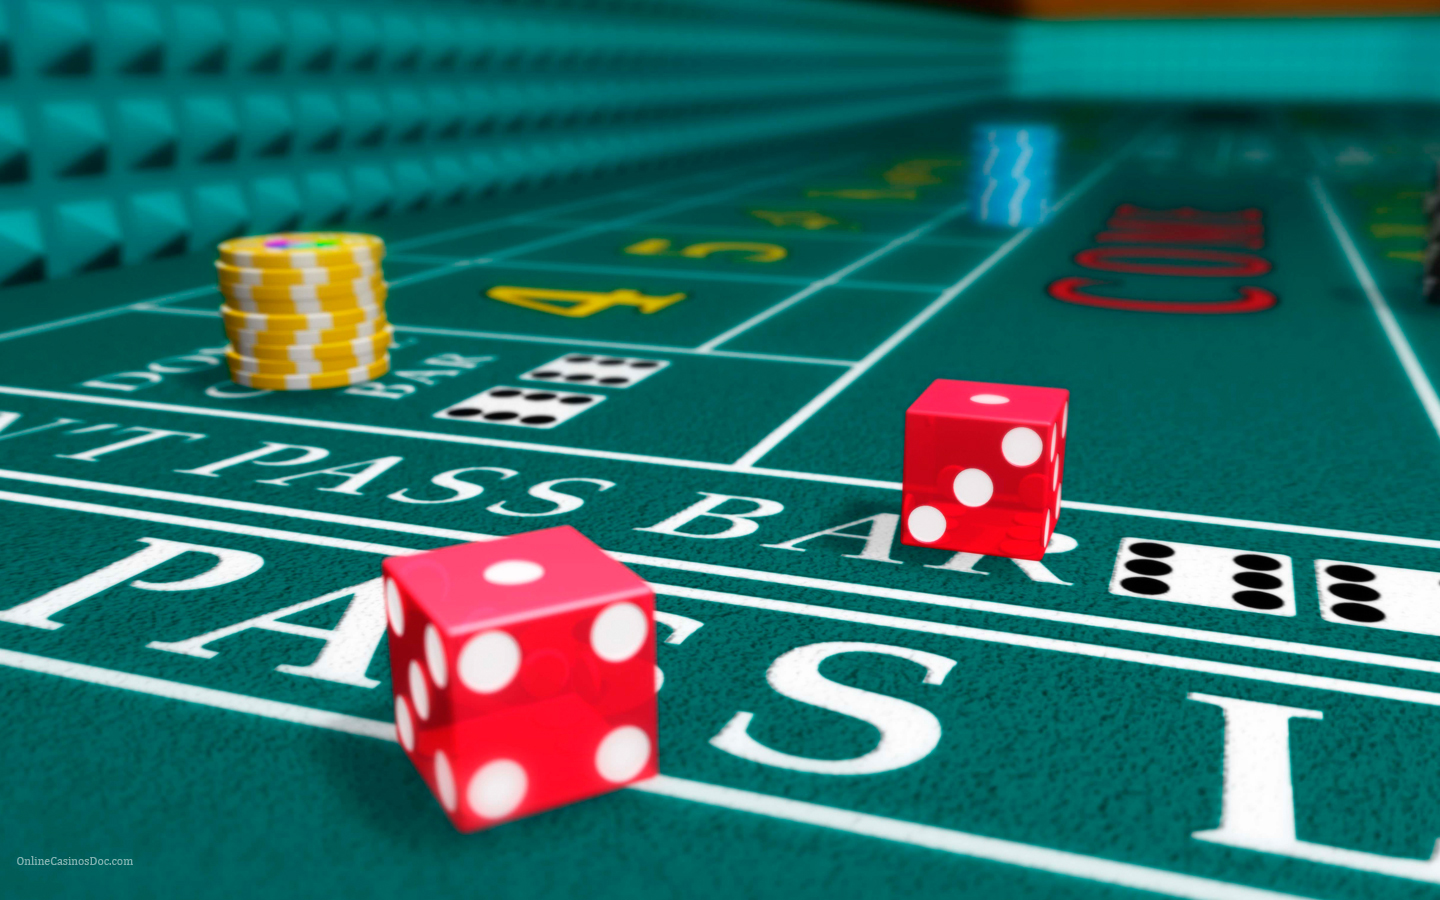 Getting The very best Software To Power Up Your Casino